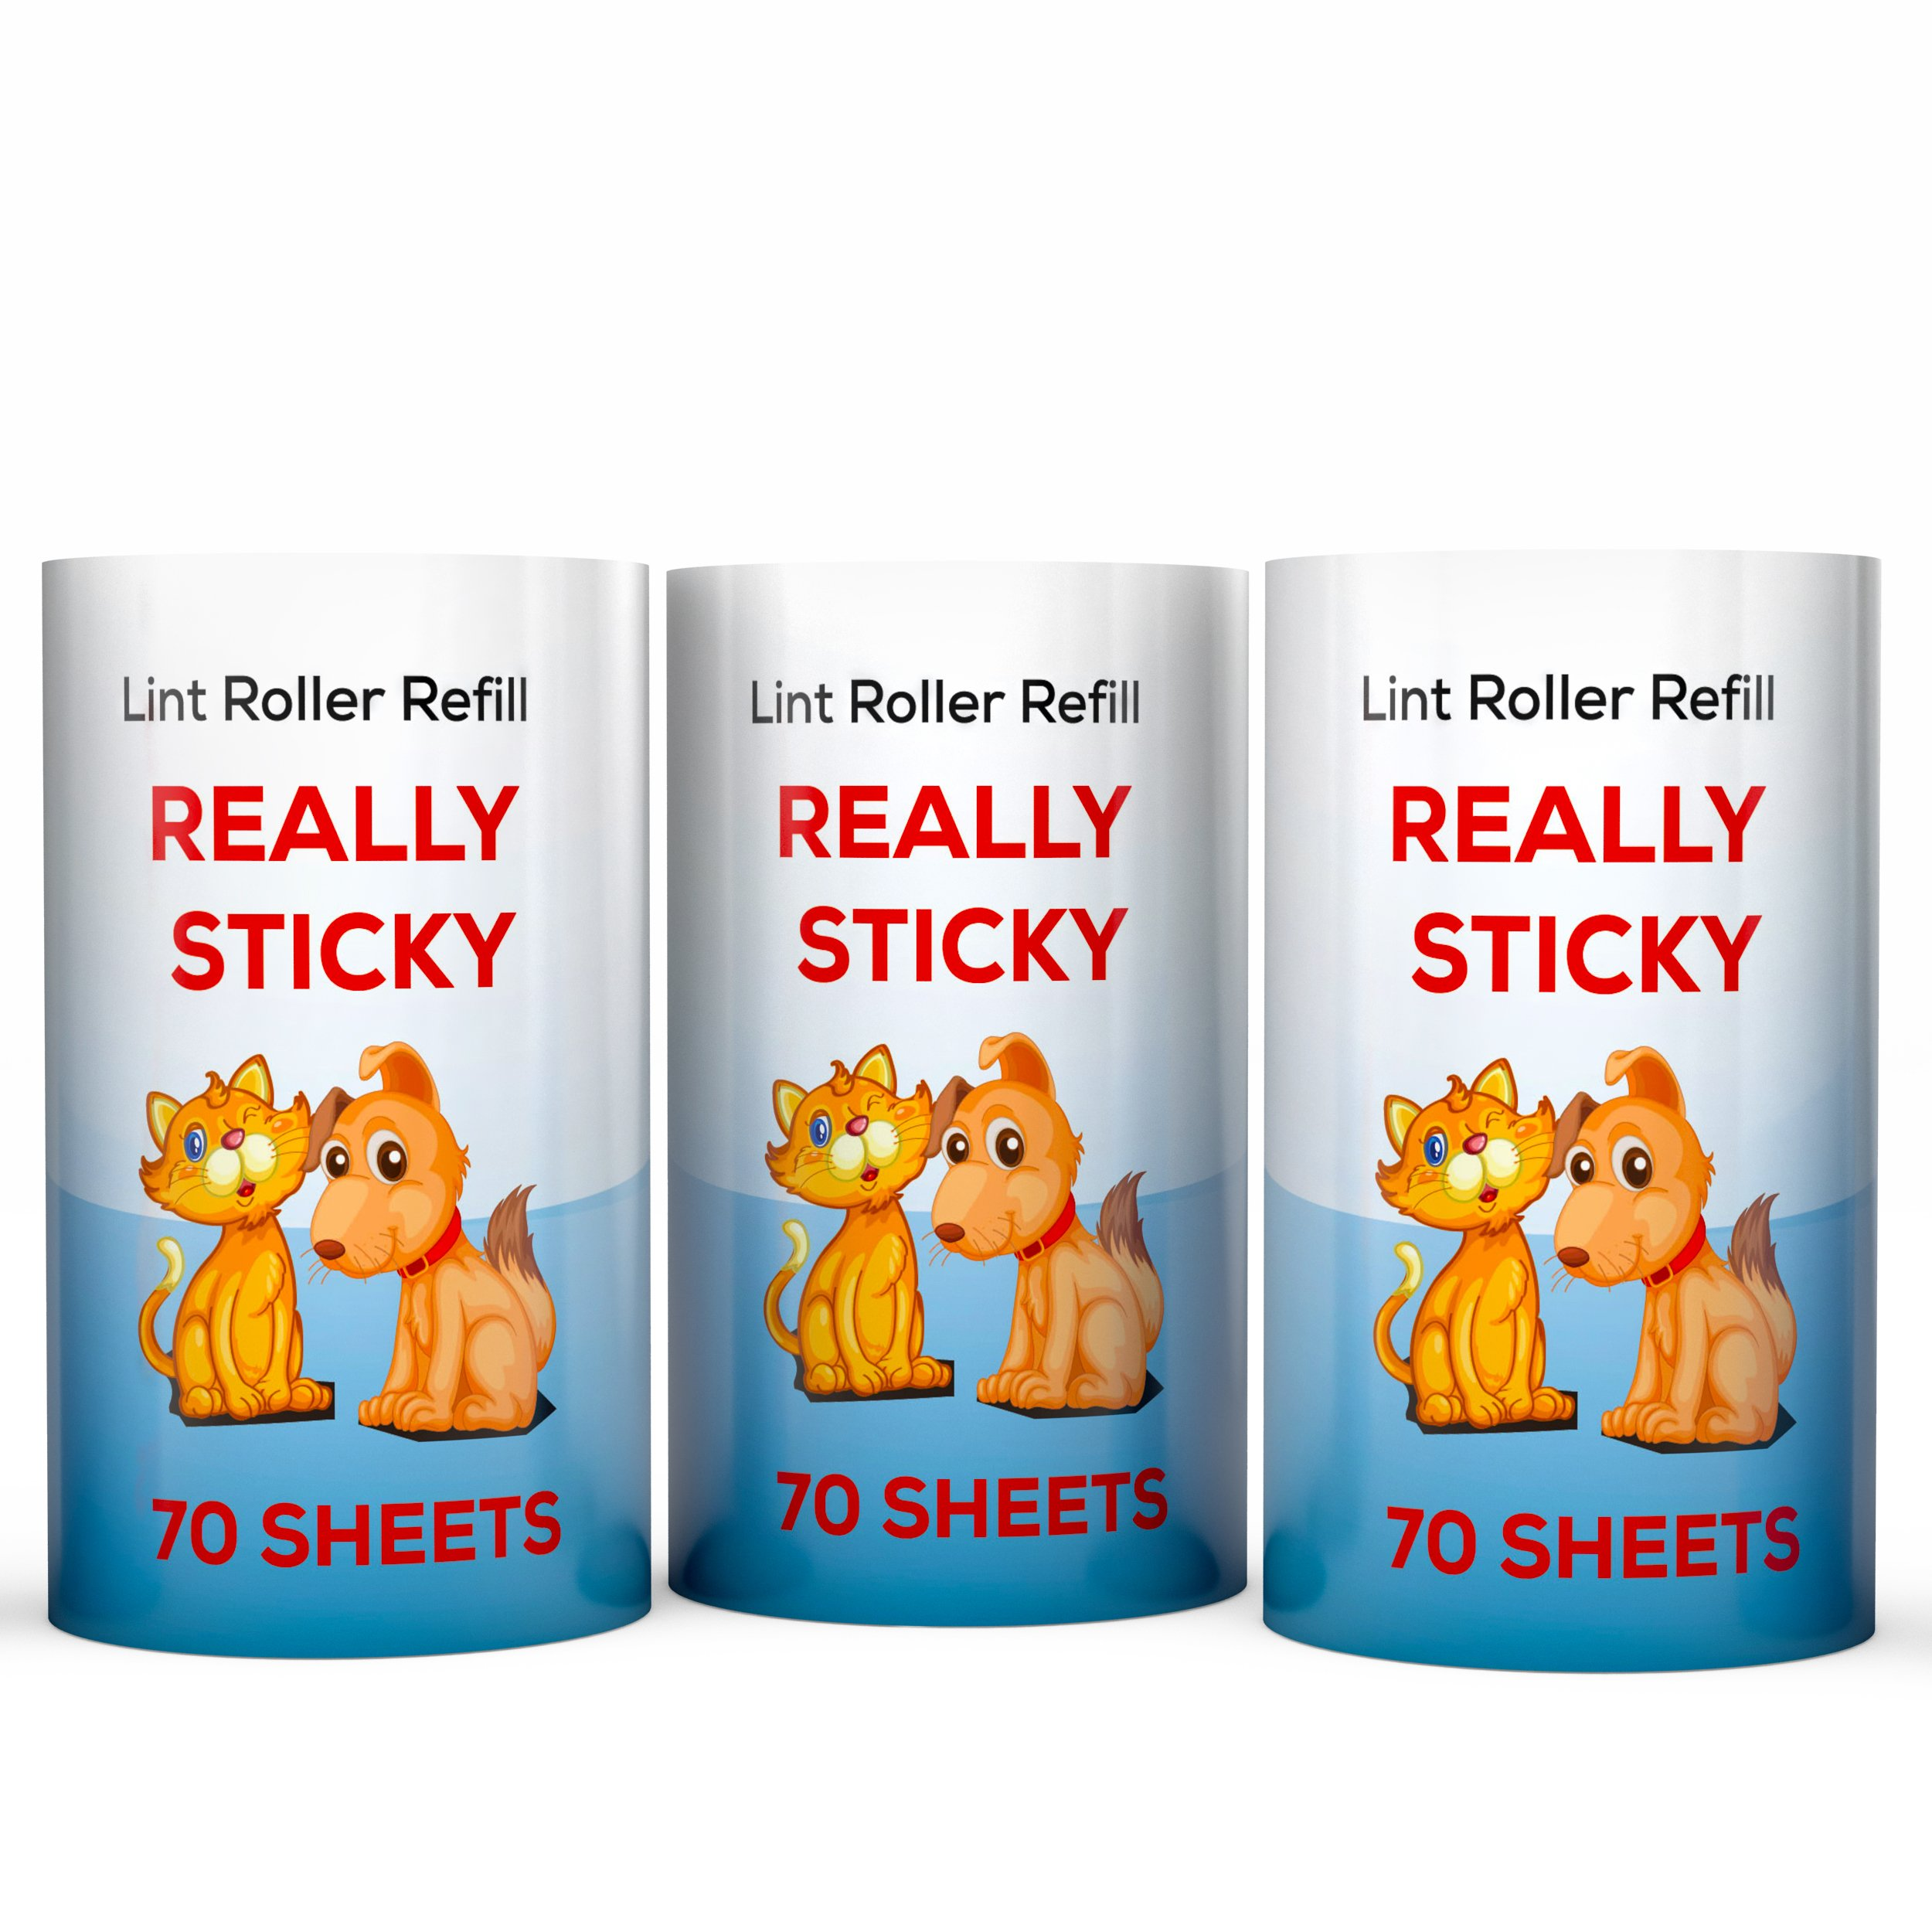 Really Sticky Tape Roller Refills for Pet Hair Roller - Best Pet Hair Removal Sheets if You Need Lint Rollers Extra Sticky - HUGE 3 PACK - 210 Sheets - Lint Refills fit all standard size Lint Rollers